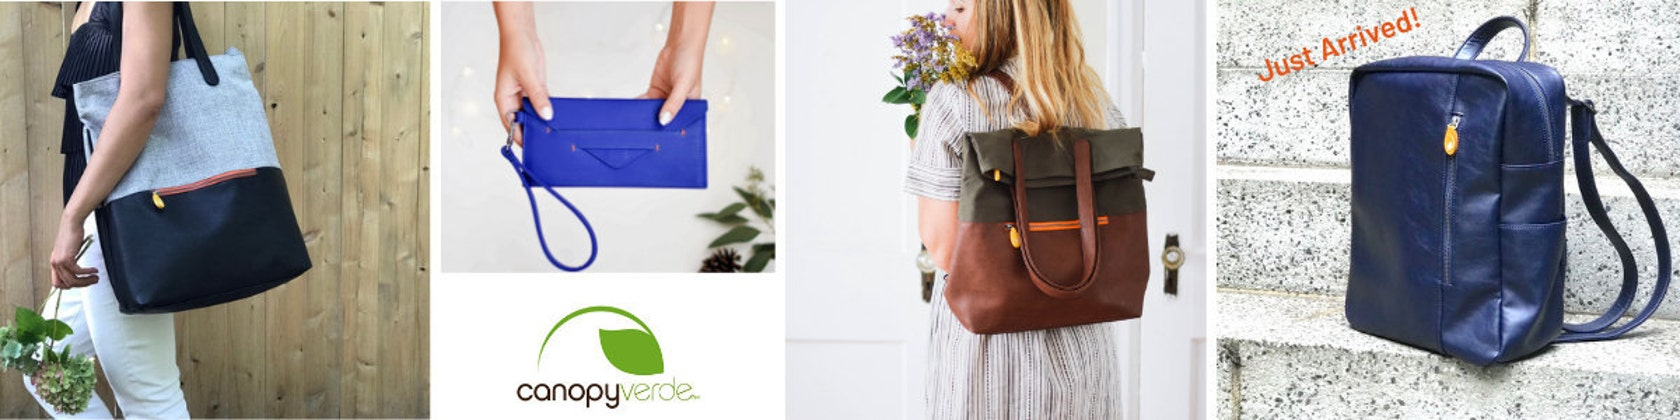 160bbf697bf4 Eco & Vegan Backpacks Wallets & Bags from Brooklyn by CanopyVerde